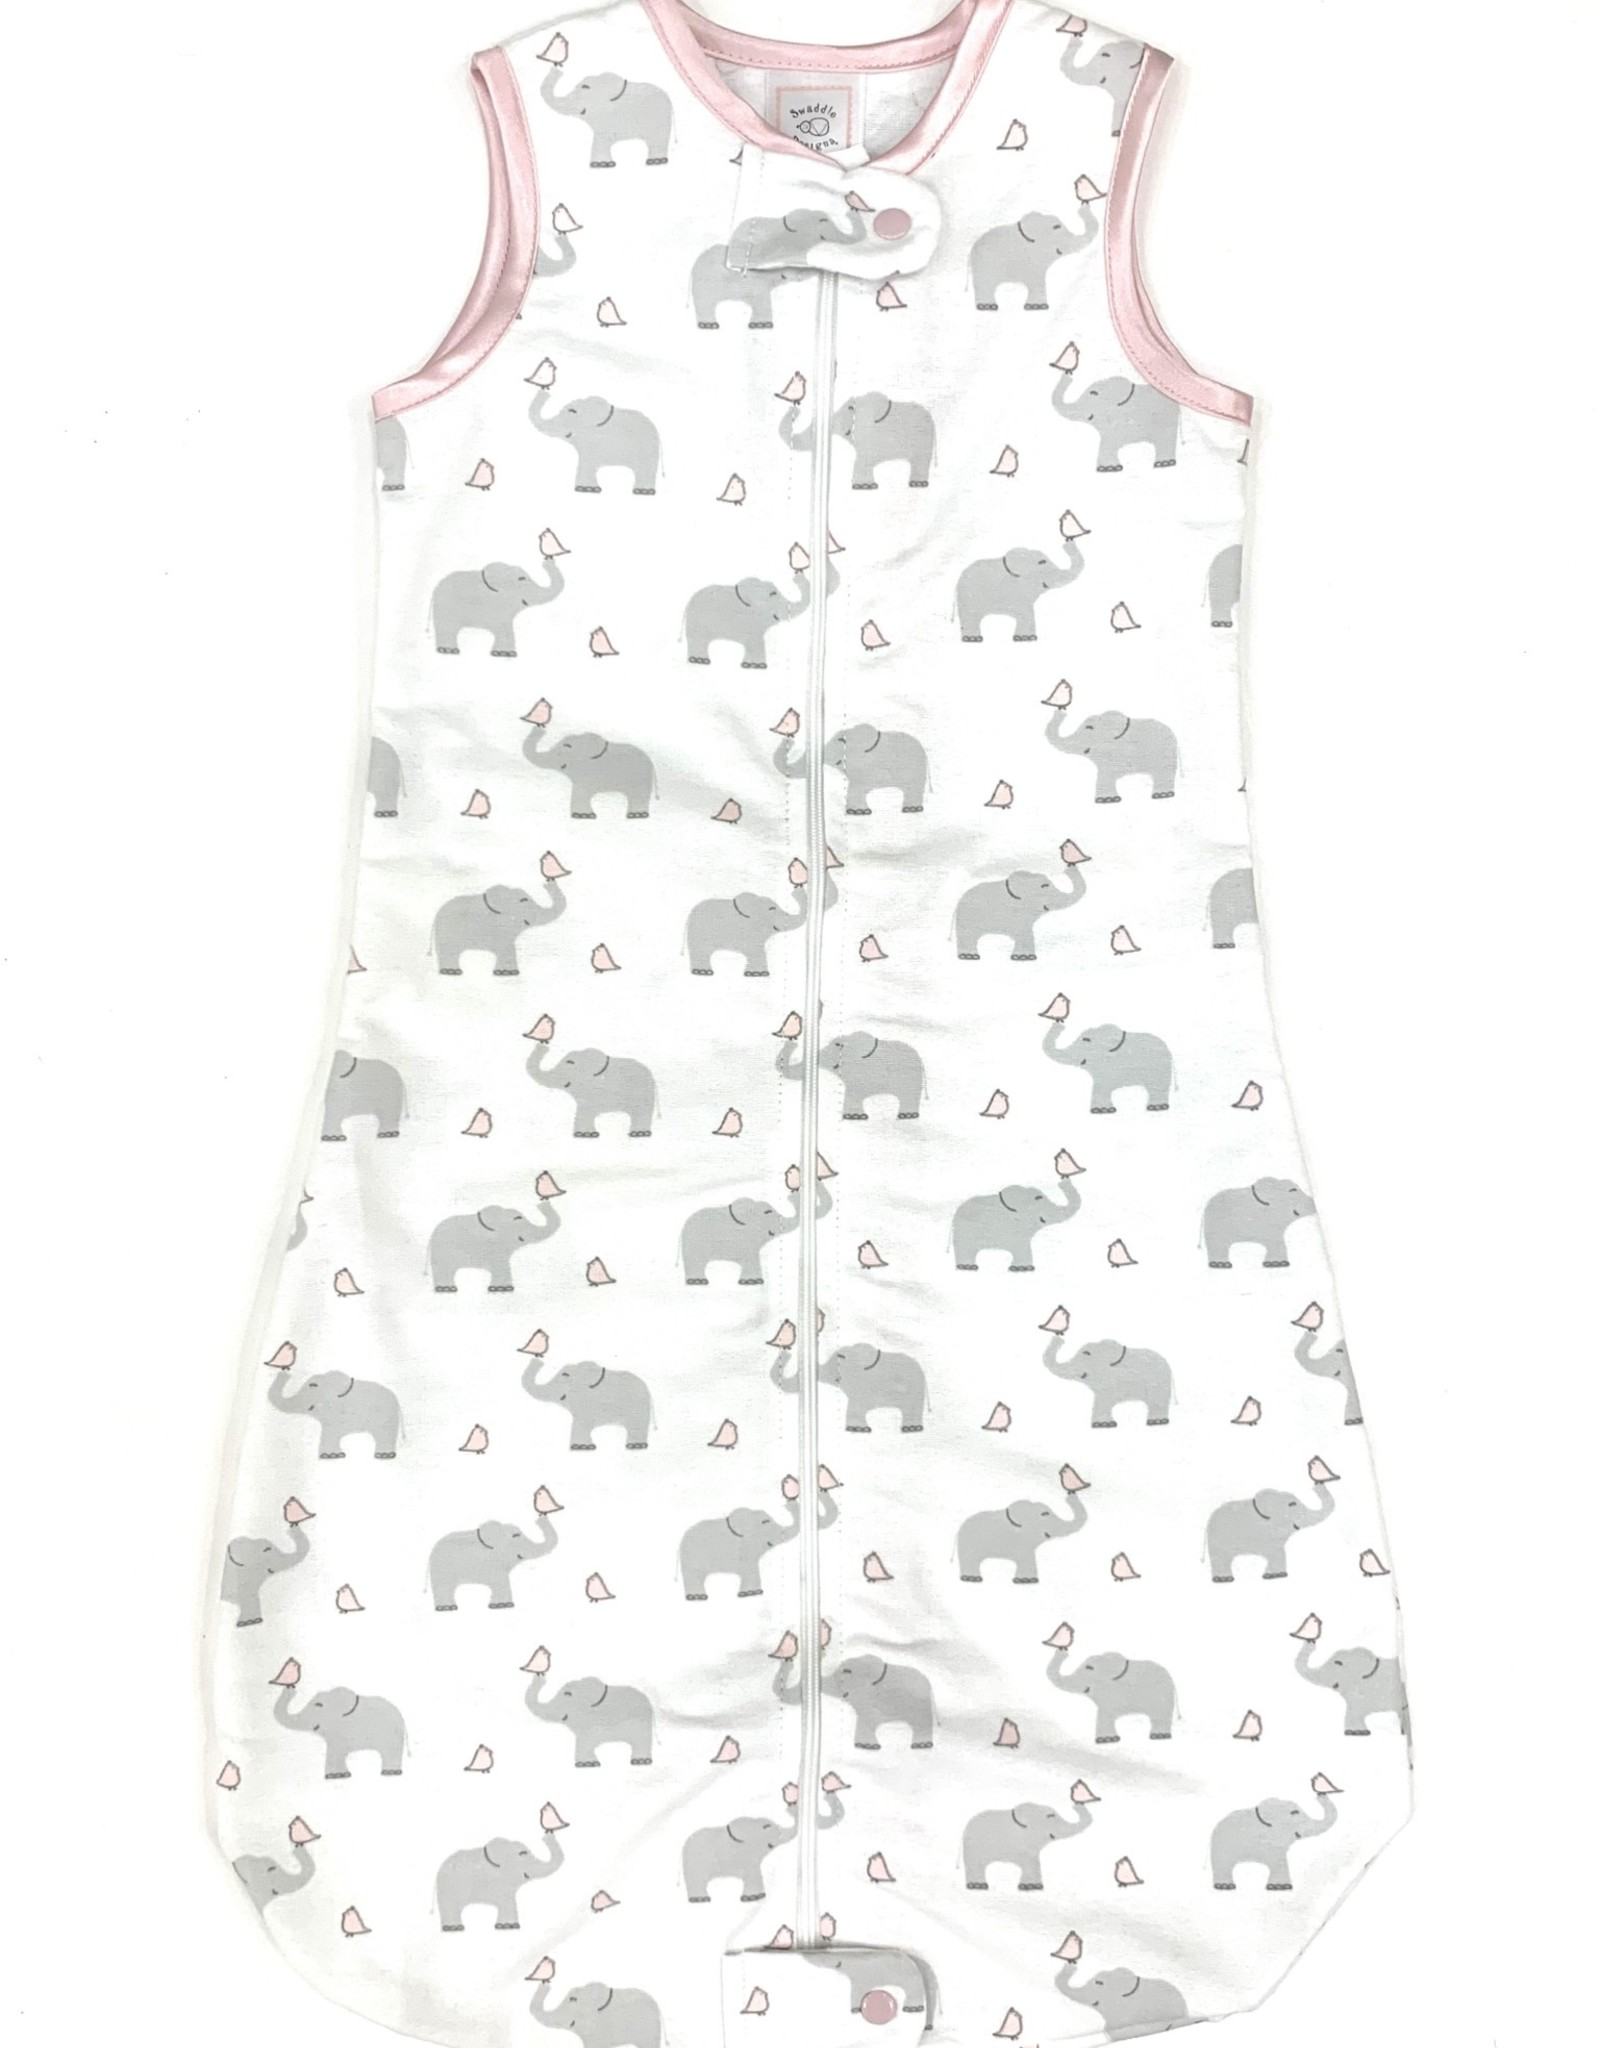 Swaddle Designs Zip Me Flannel Sleep Sack Elephants And Chicks Pink